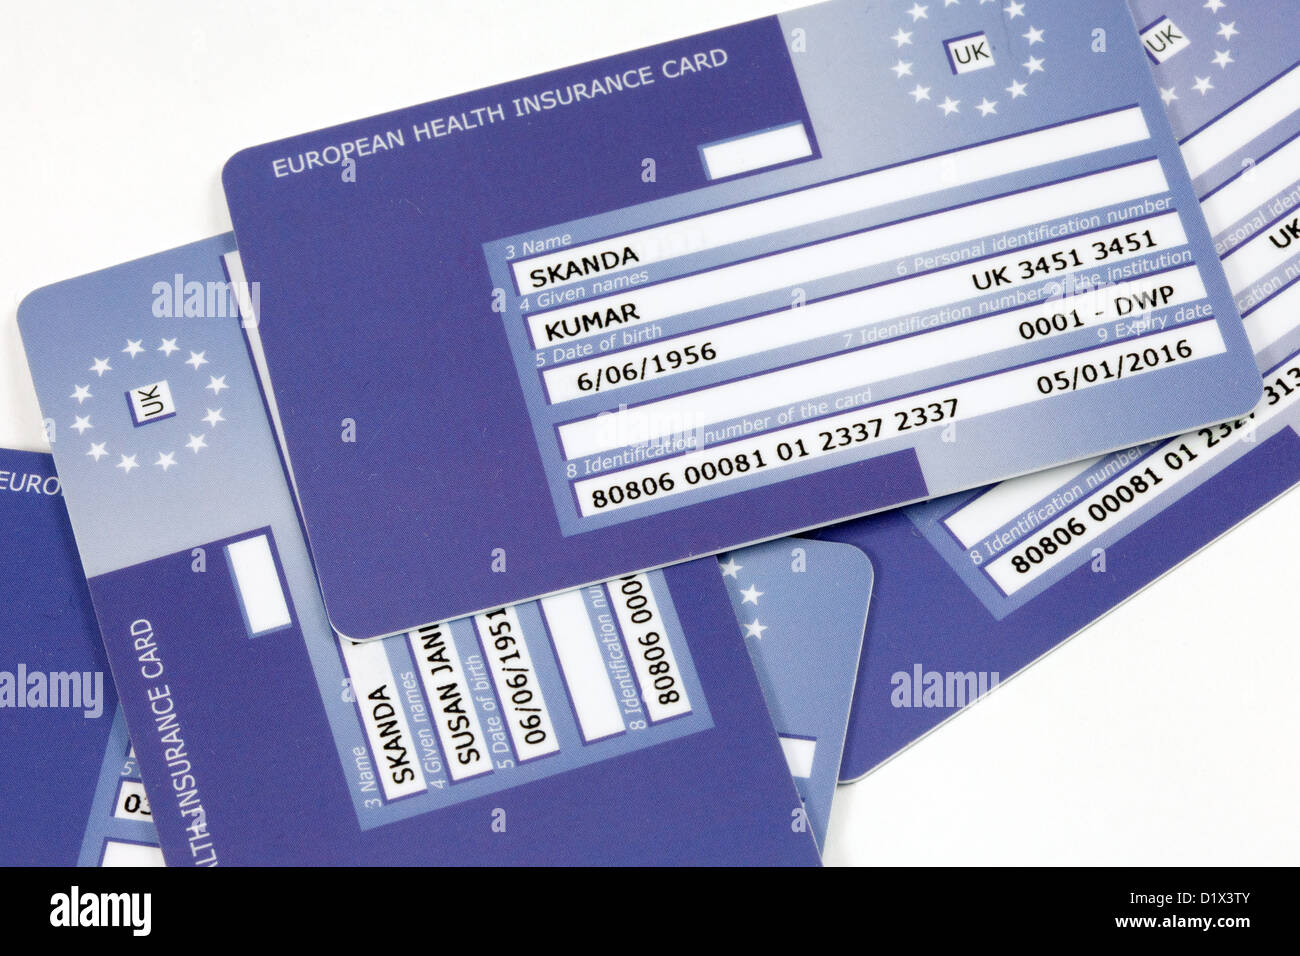 European Health Insurance cards or E111 card, in the UK - Stock Image